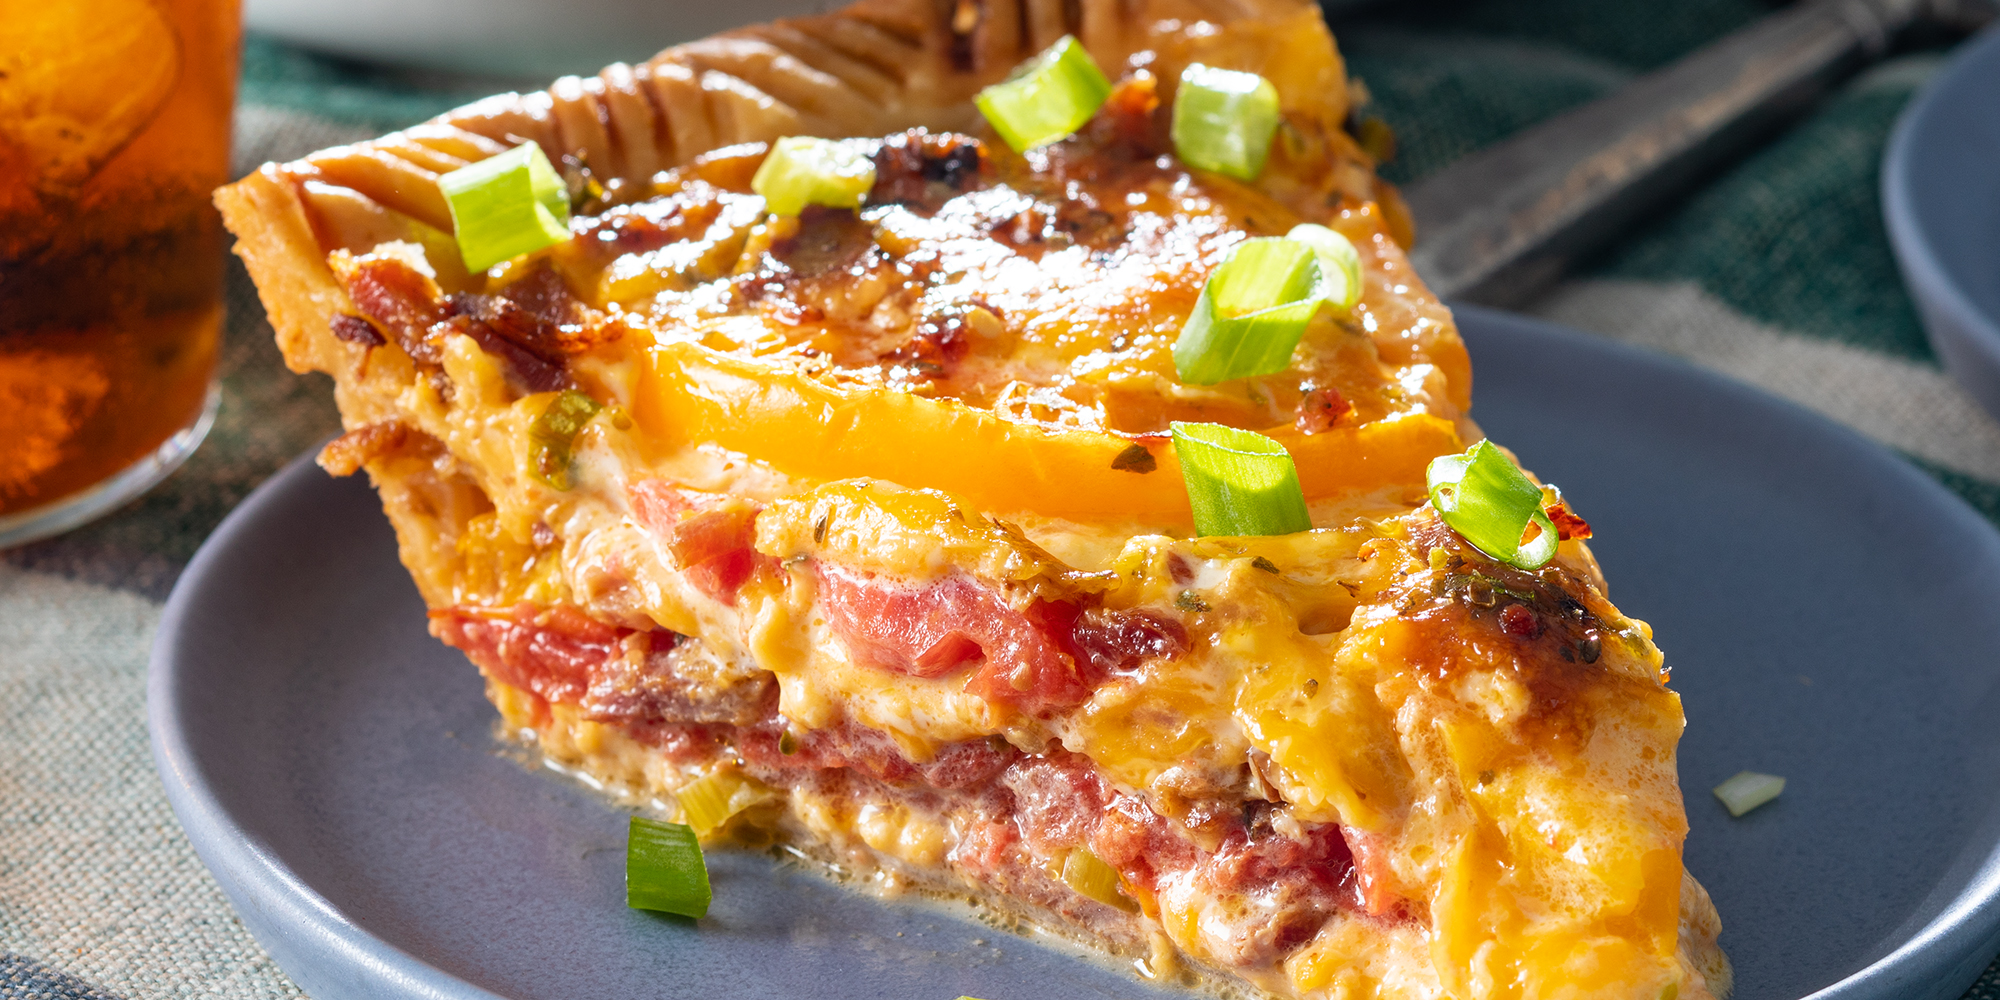 view into a slice of cheesy tomato pie topped with green onions.